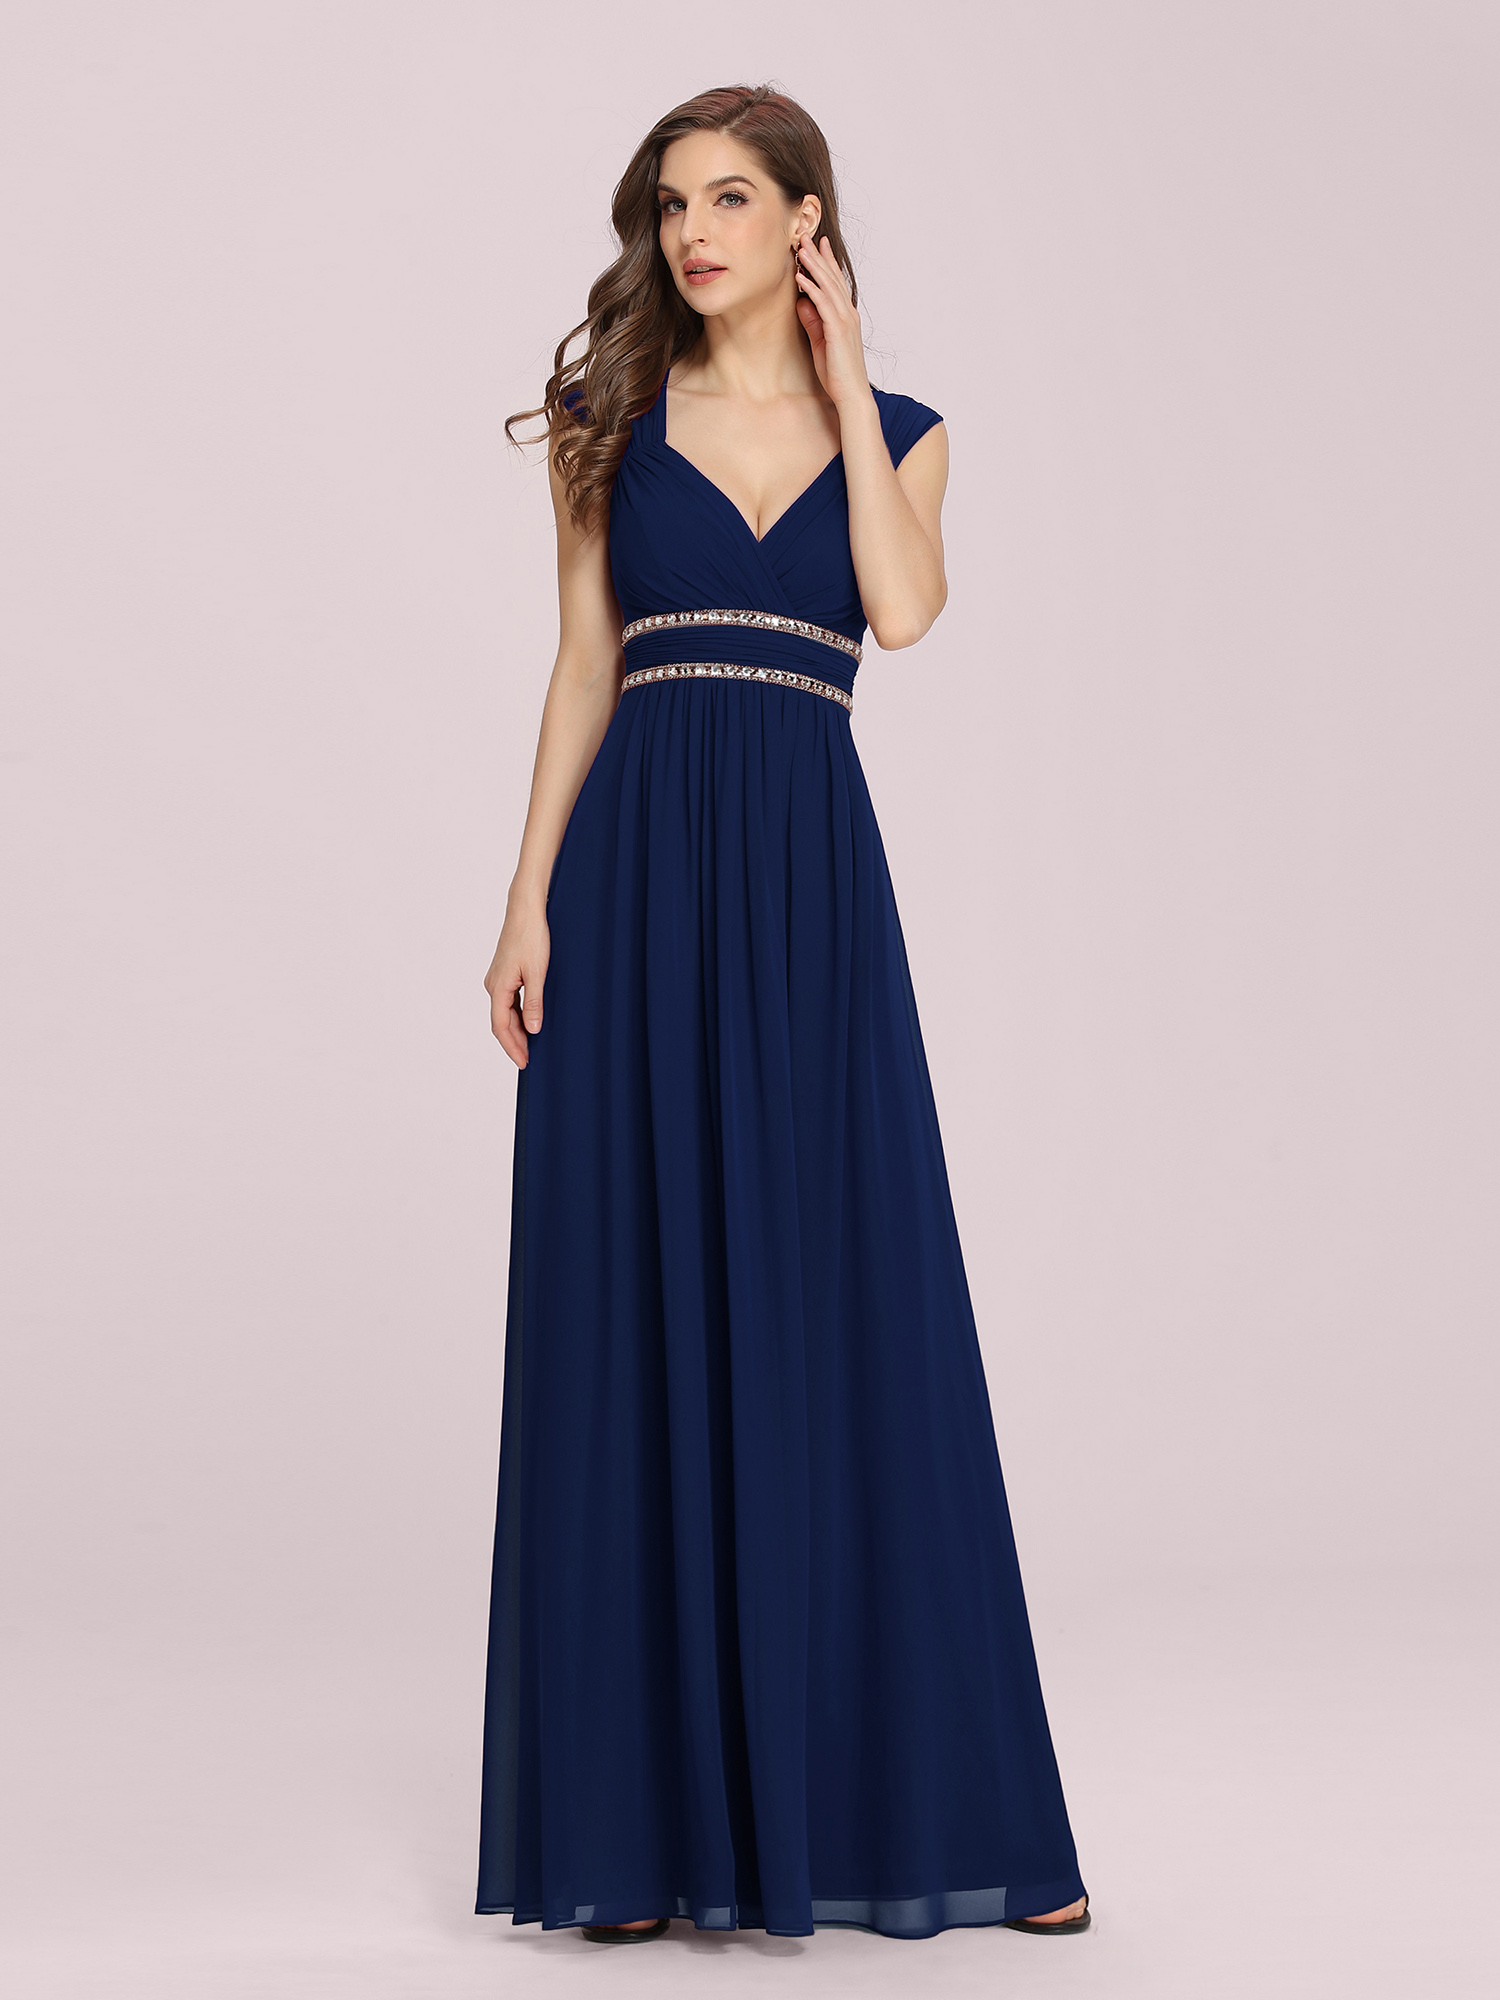 7c5999168a7 Ever Pretty Long Ball Evening Dresses V-neck Navy Blue Bridesmaid Dresses  08697